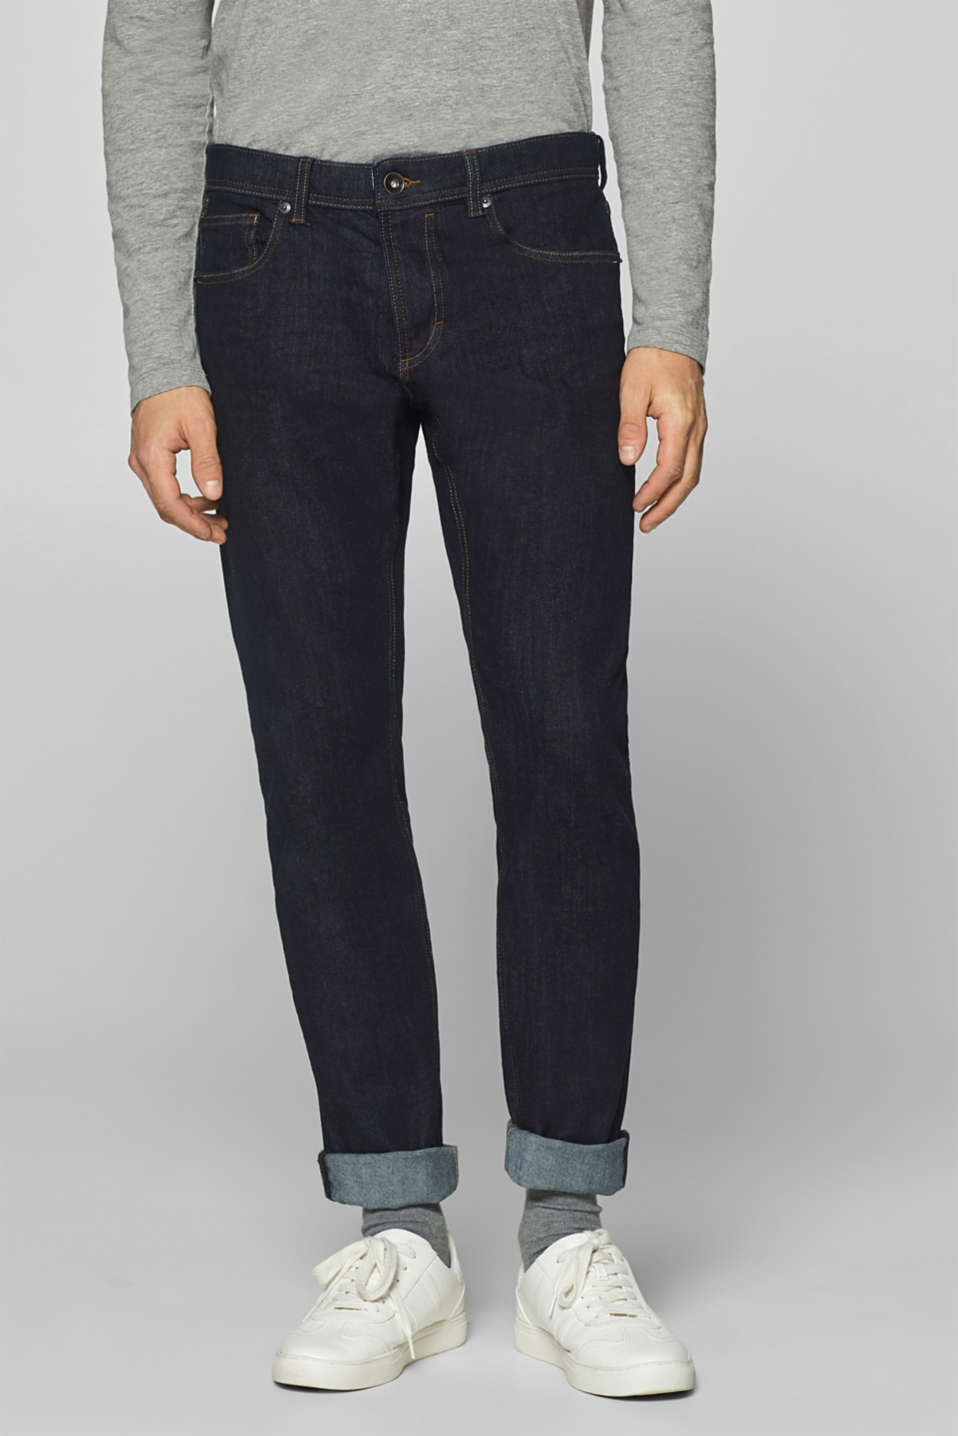 Esprit - Two-way stretch jeans in a rinse wash